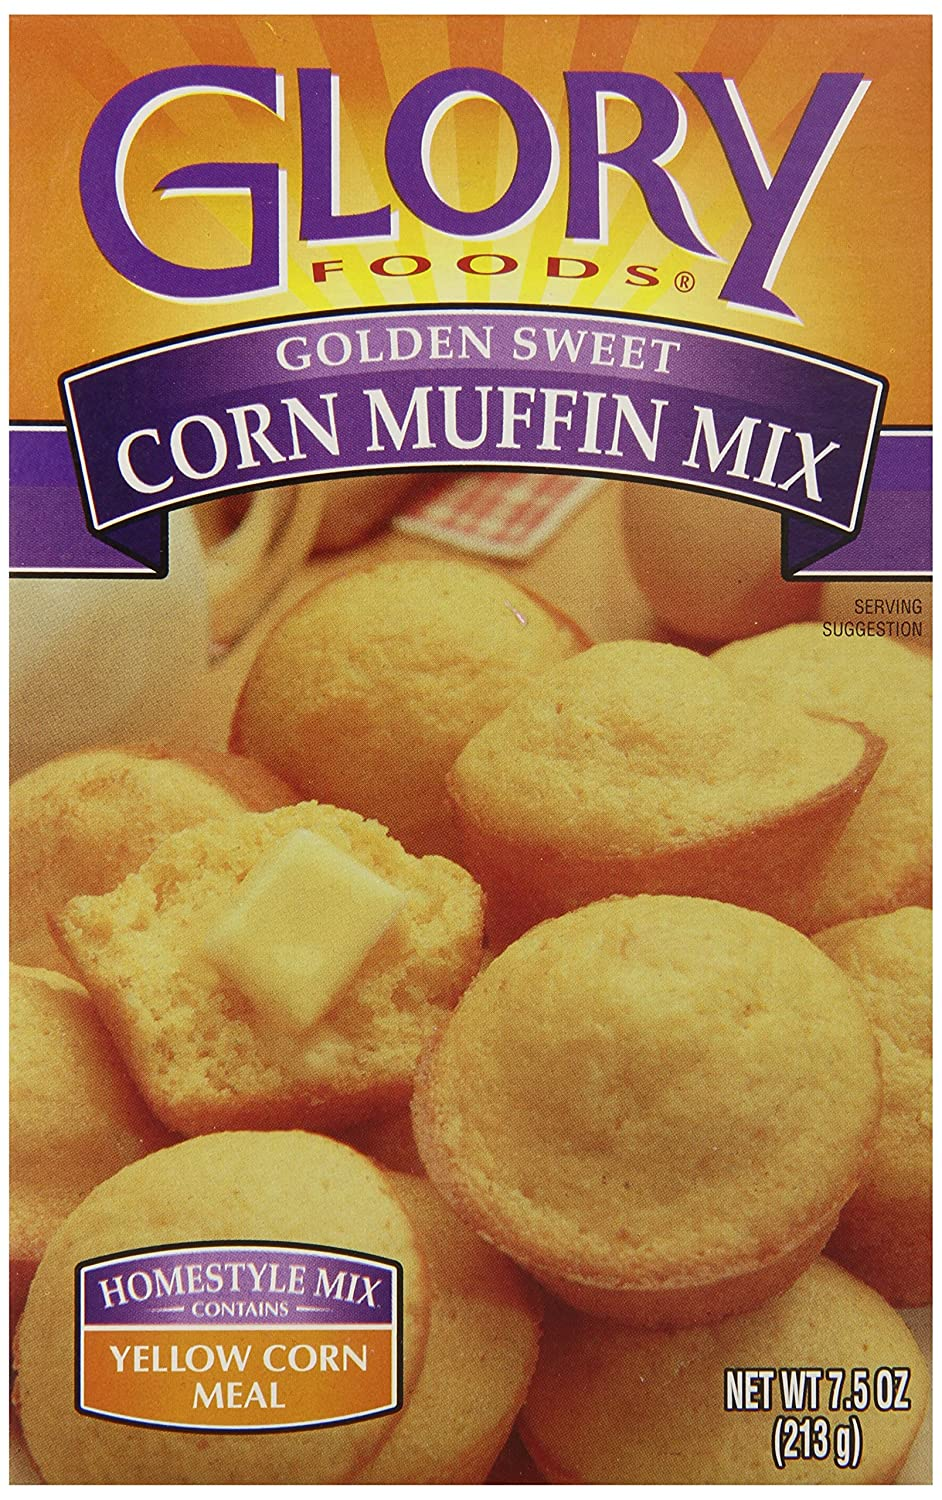 Glory Foods Golden Corn Muffin Mix Ounce Discount mail order 7.5 of Max 87% OFF Pack 24